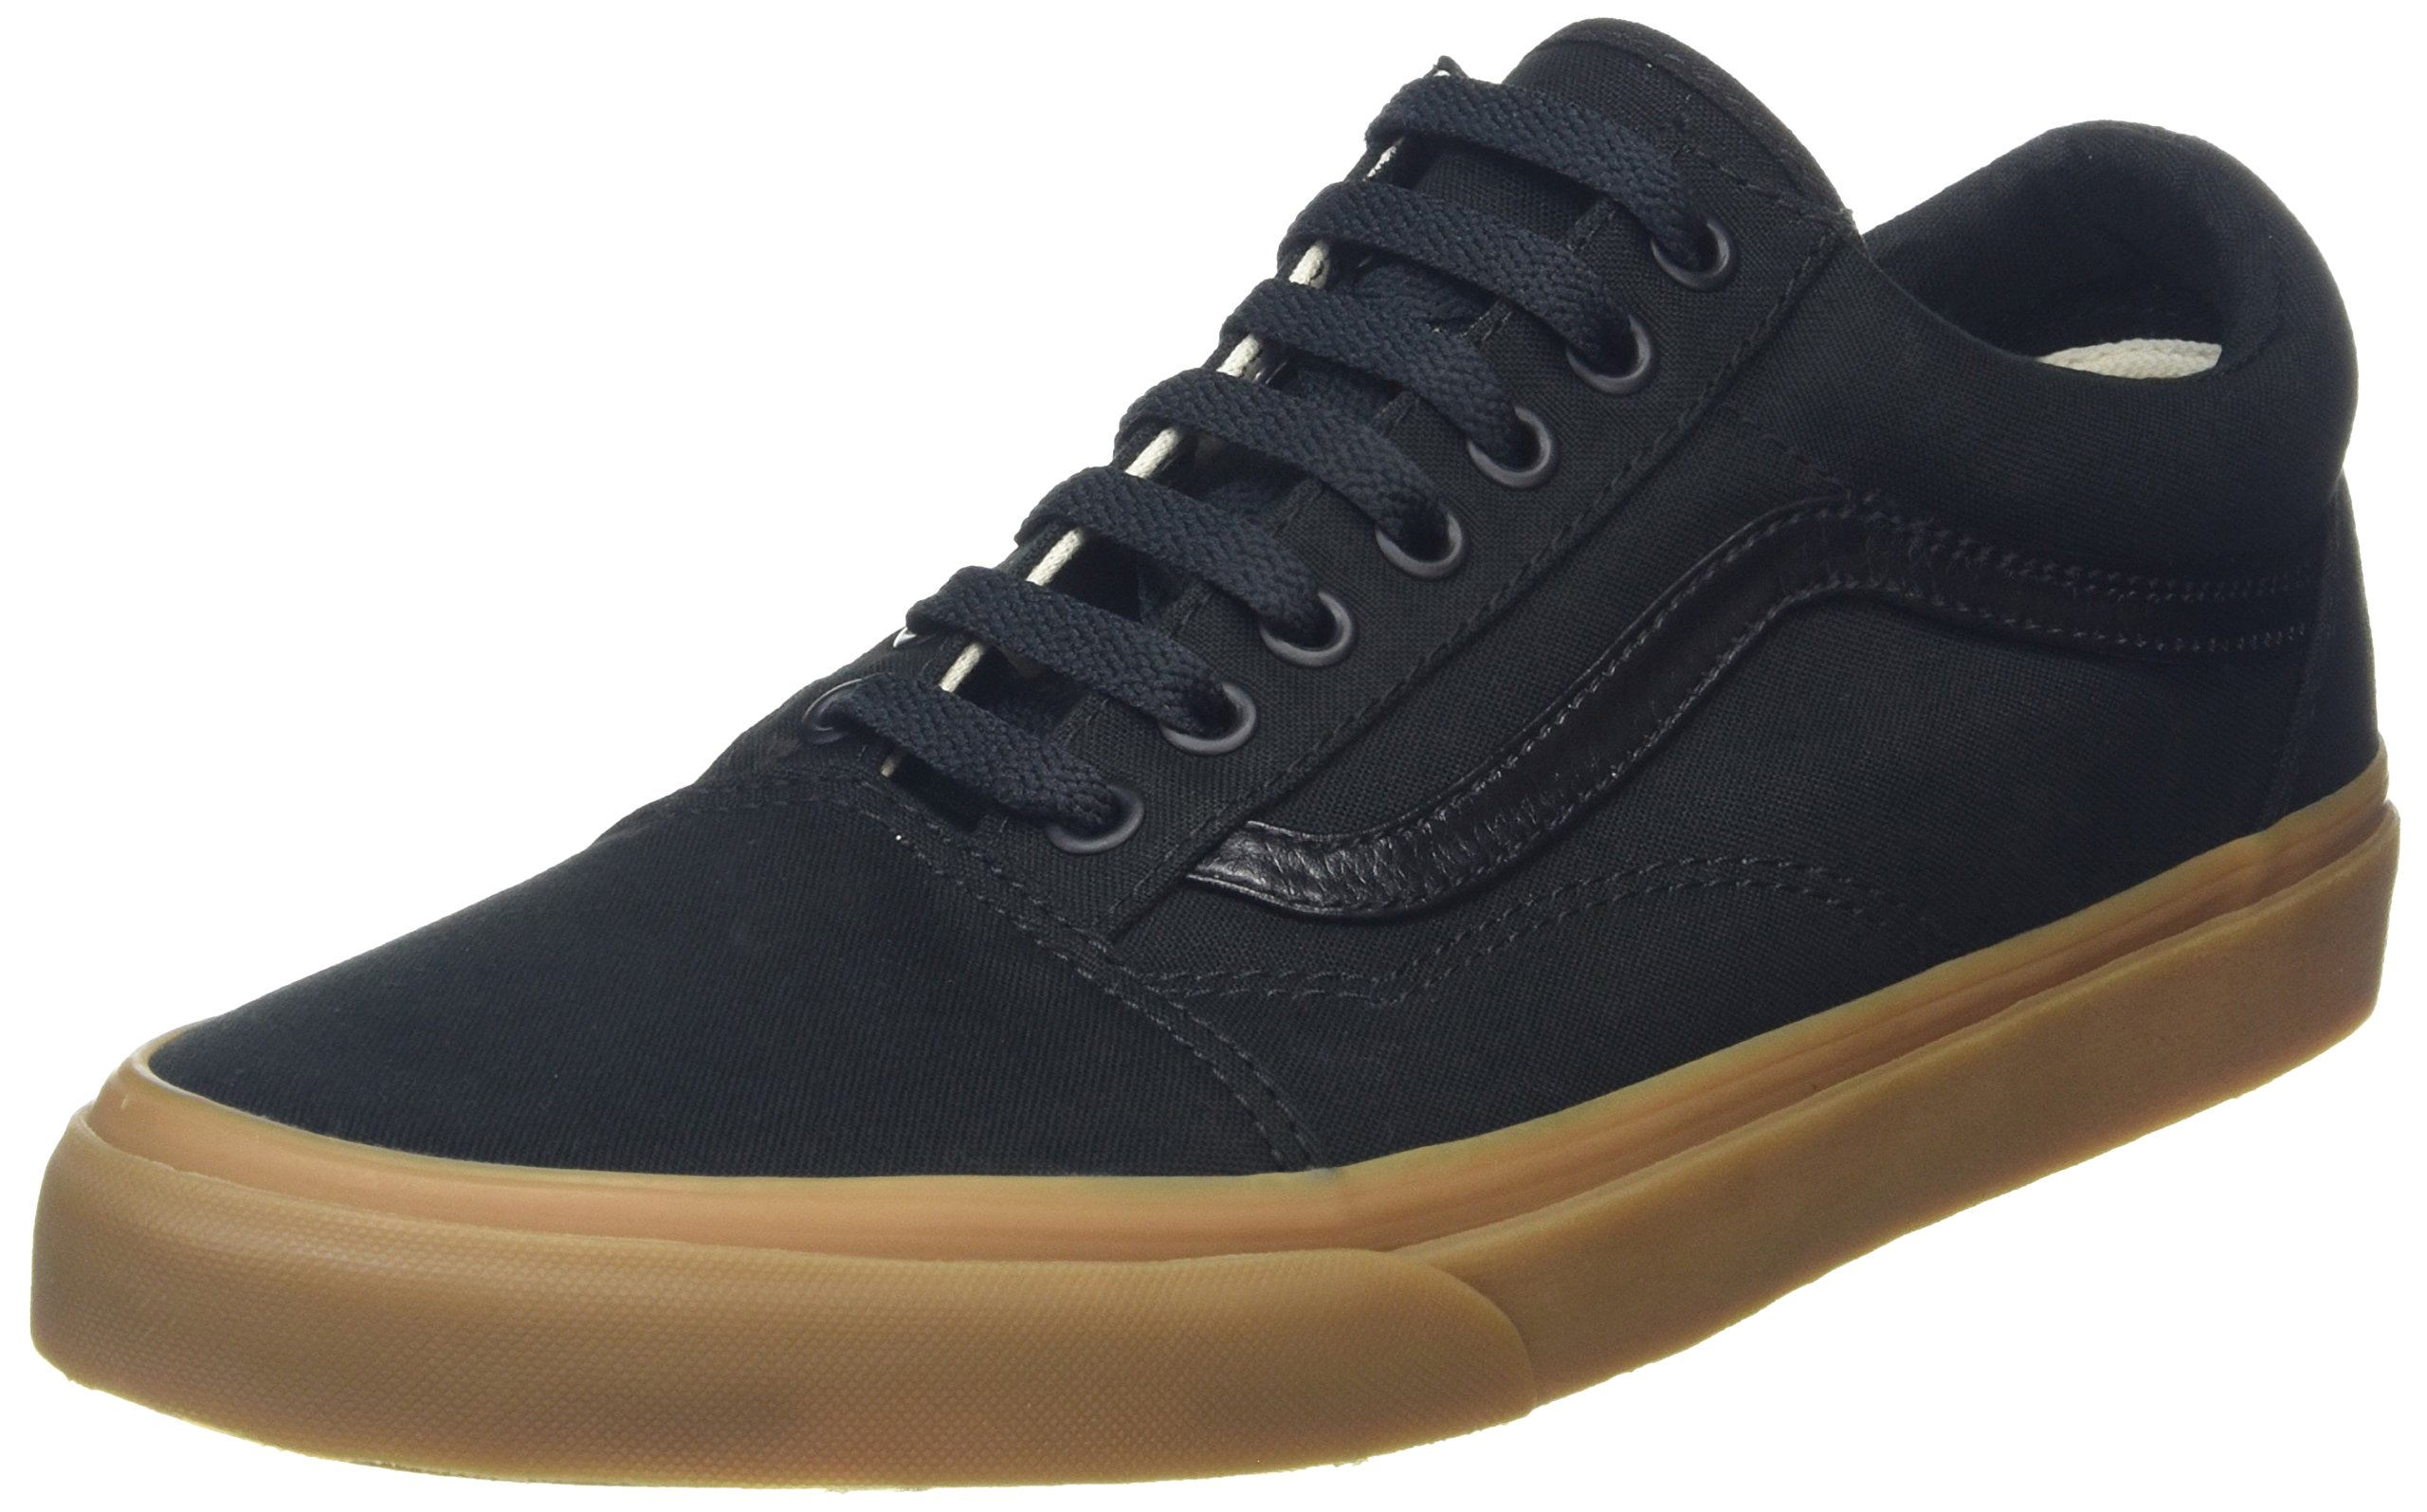 7415aaea158 Galleon - Vans Unisex Old Skool (Canvas Gum) Black LghtGm Skate Shoe 10 Men  US 11.5 Women US